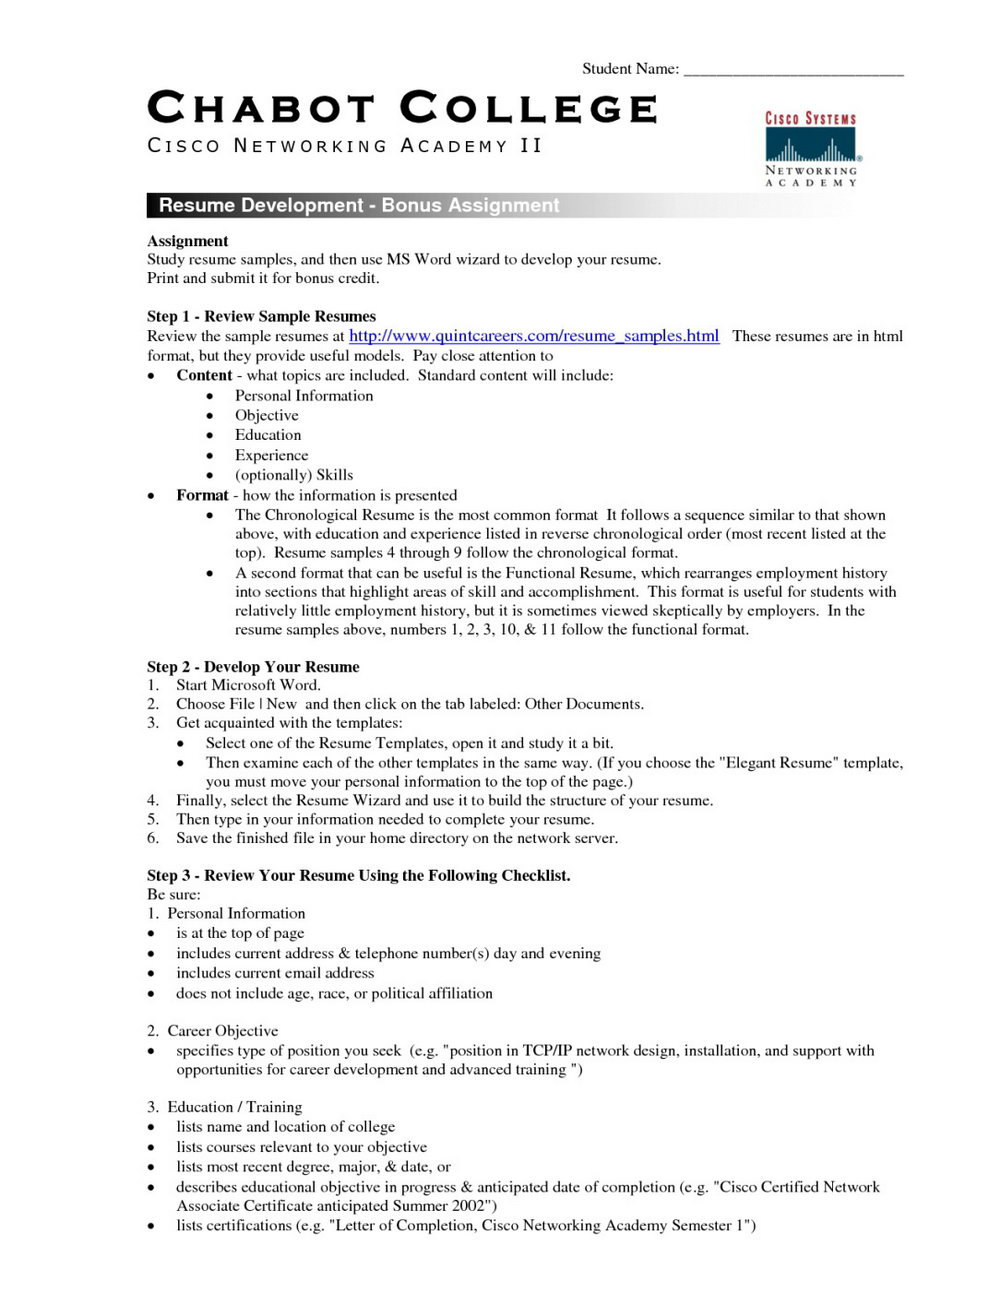 Resume Format Word Document Free Download